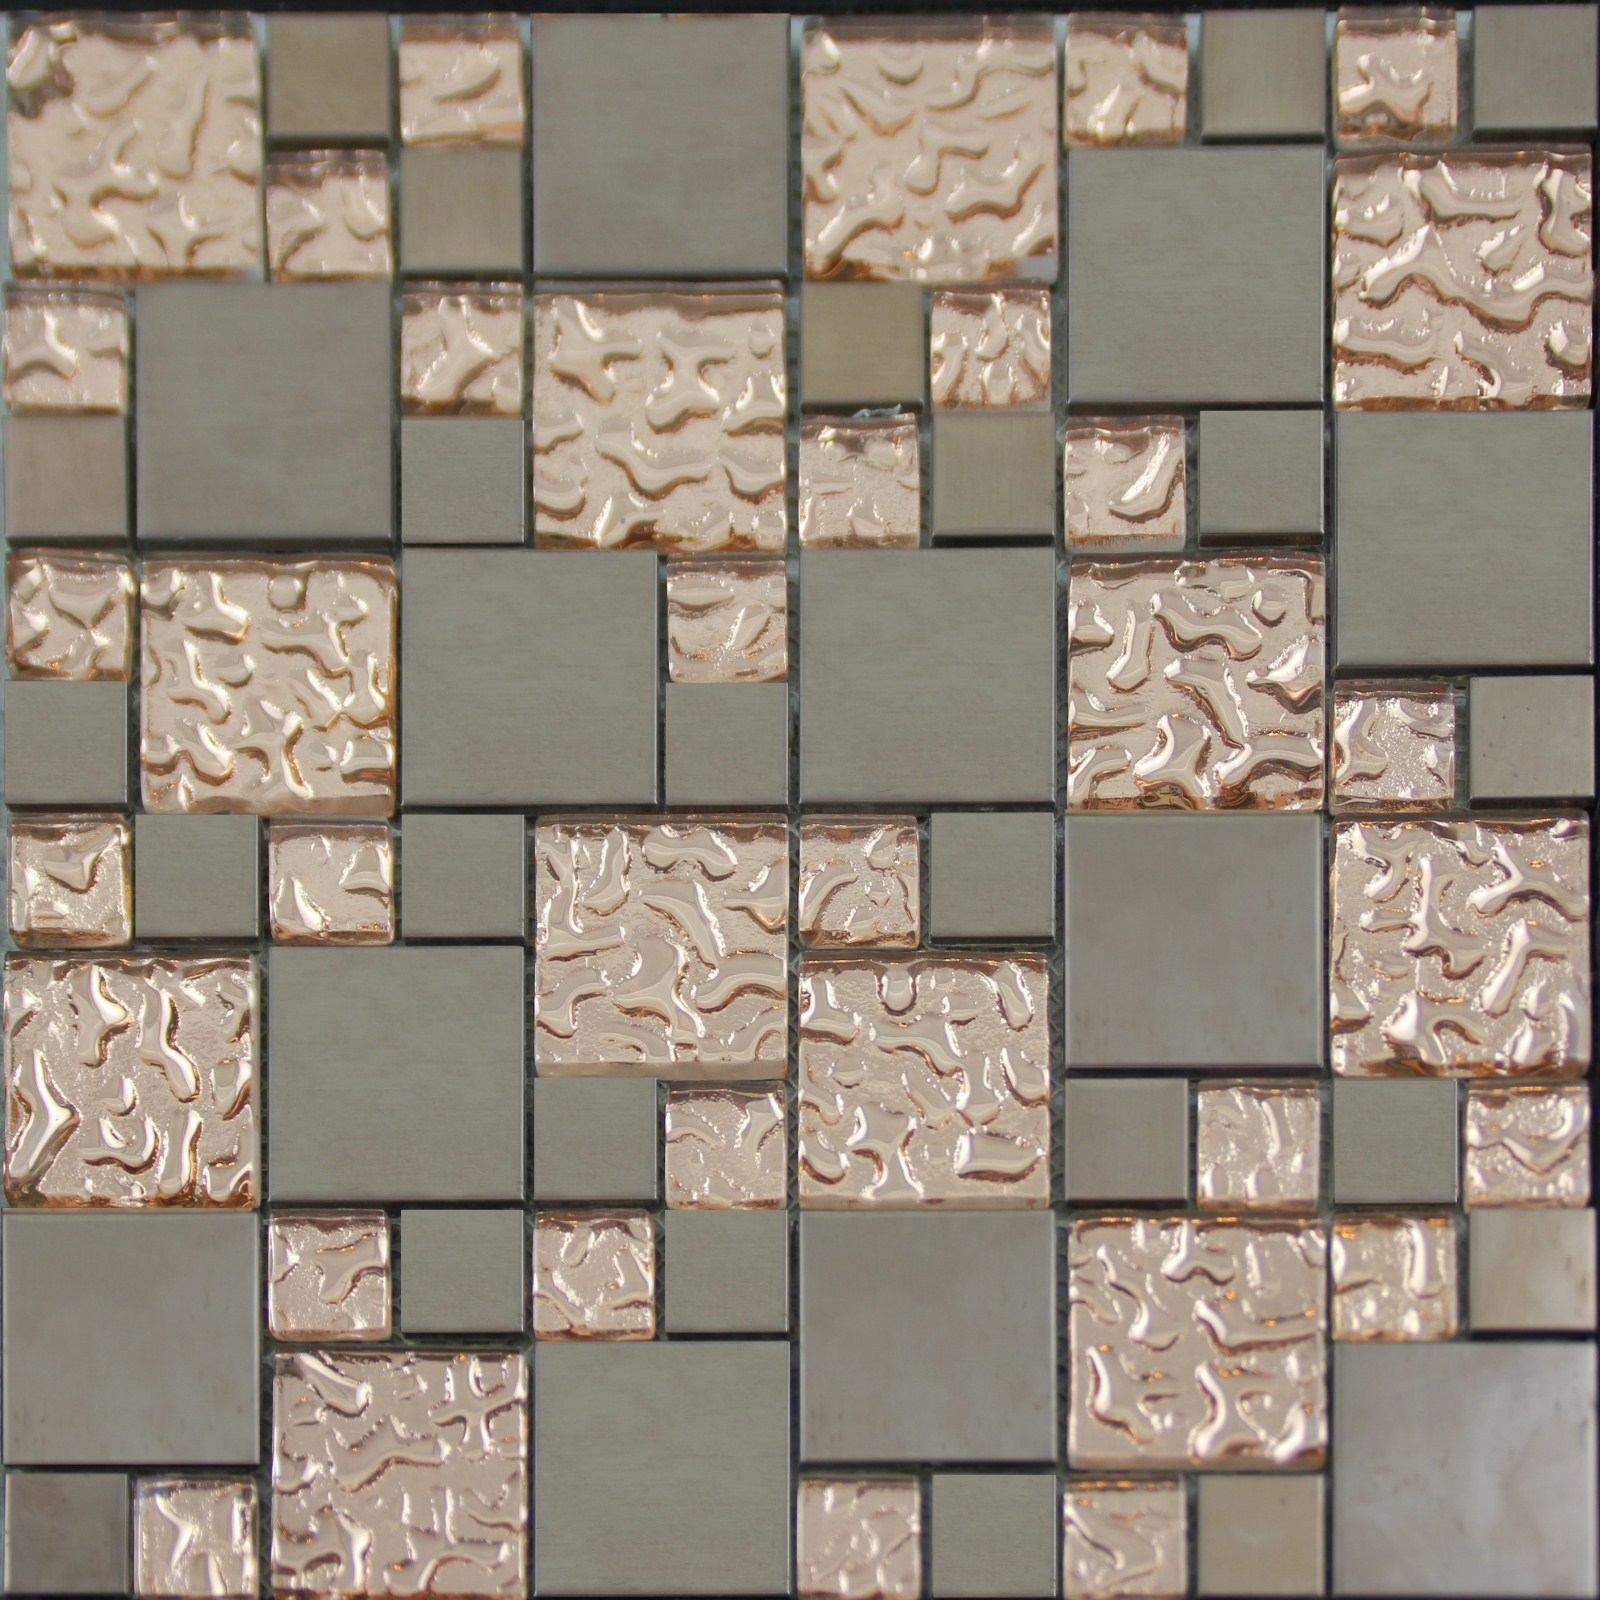 surprising kitchen wall tile designs | Copper Glass and Porcelain Square Mosaic Tile Designs ...